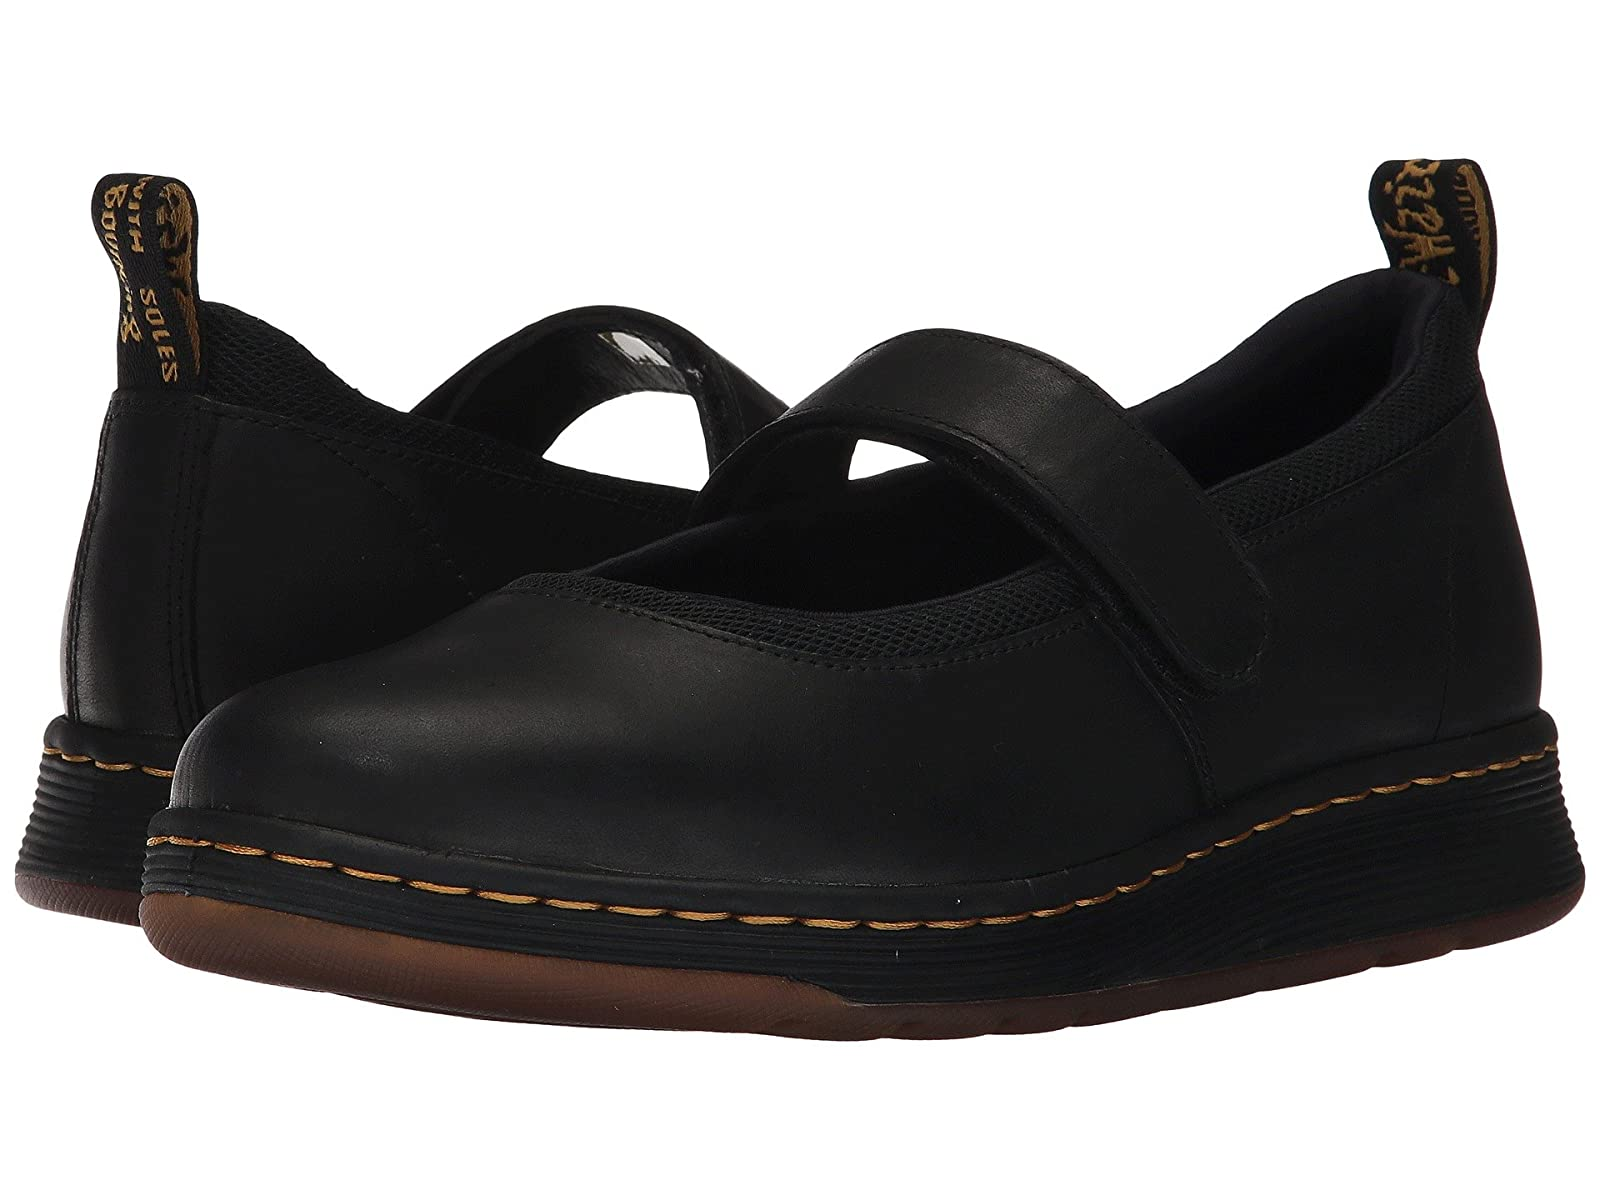 Dr. Martens Askins Mary Jane ShoeCheap and distinctive eye-catching shoes